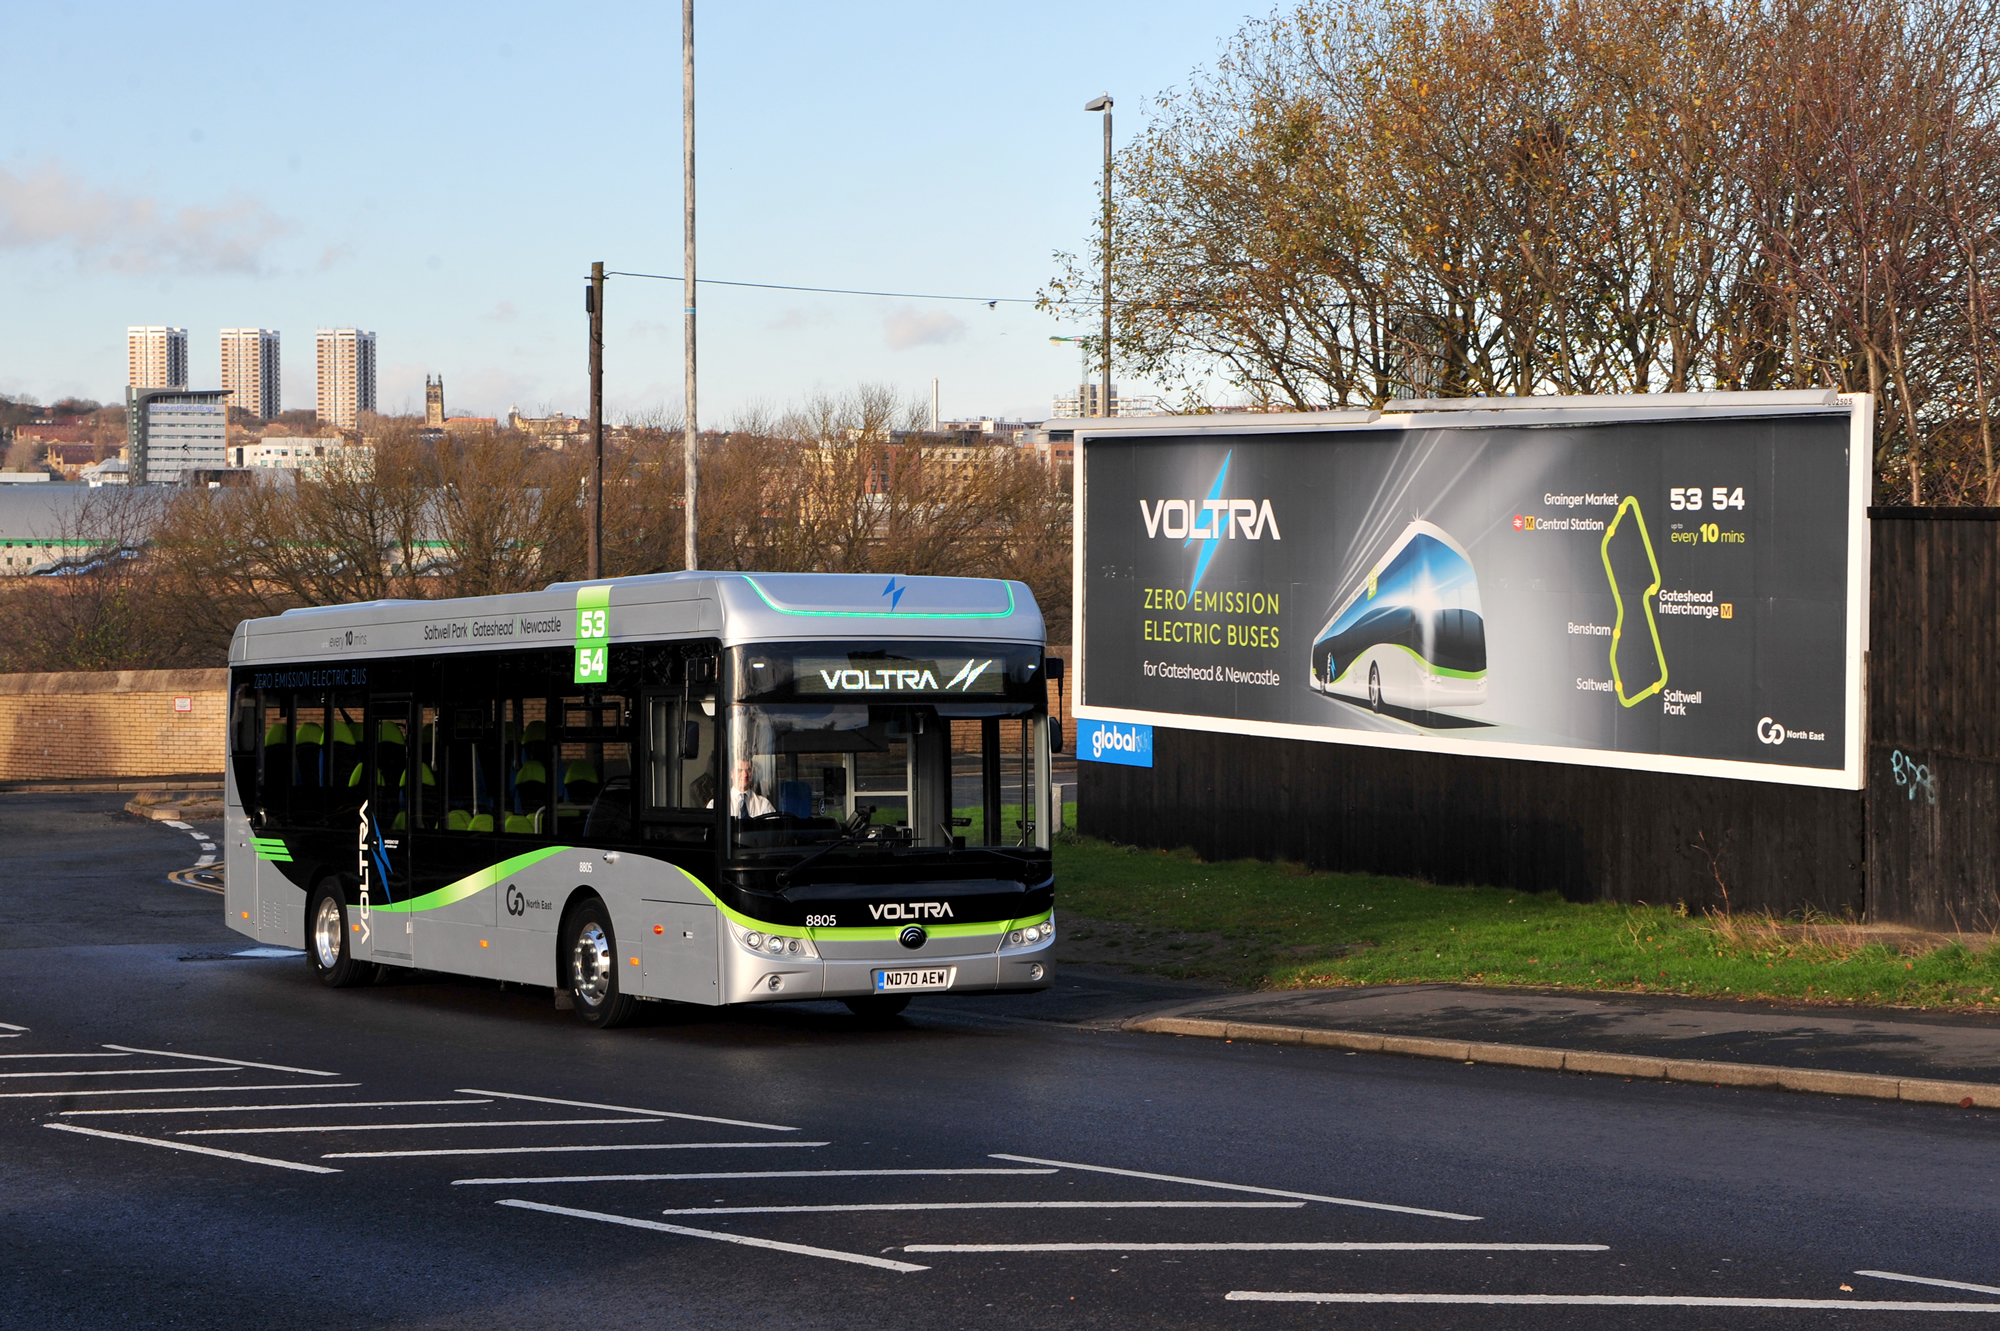 Voltra electric bus